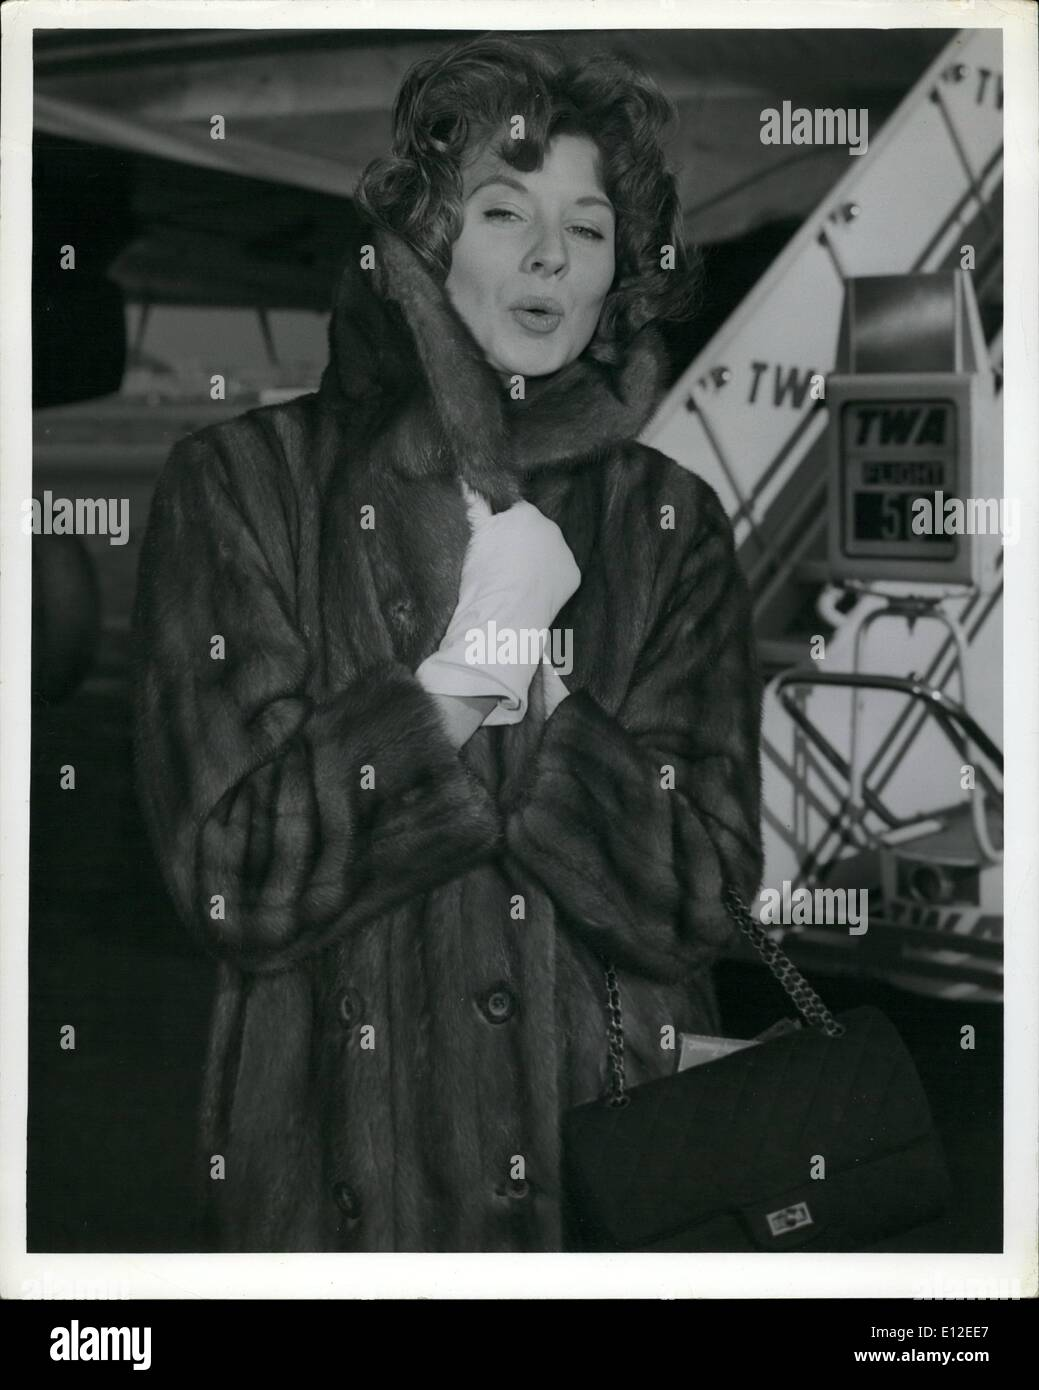 Dec. 20, 2011 - Idlewild Airport, N.Y., Nov 7 - Suzy Parker came prepared for this morning's brisk weather, as she arrived here - Stock Image